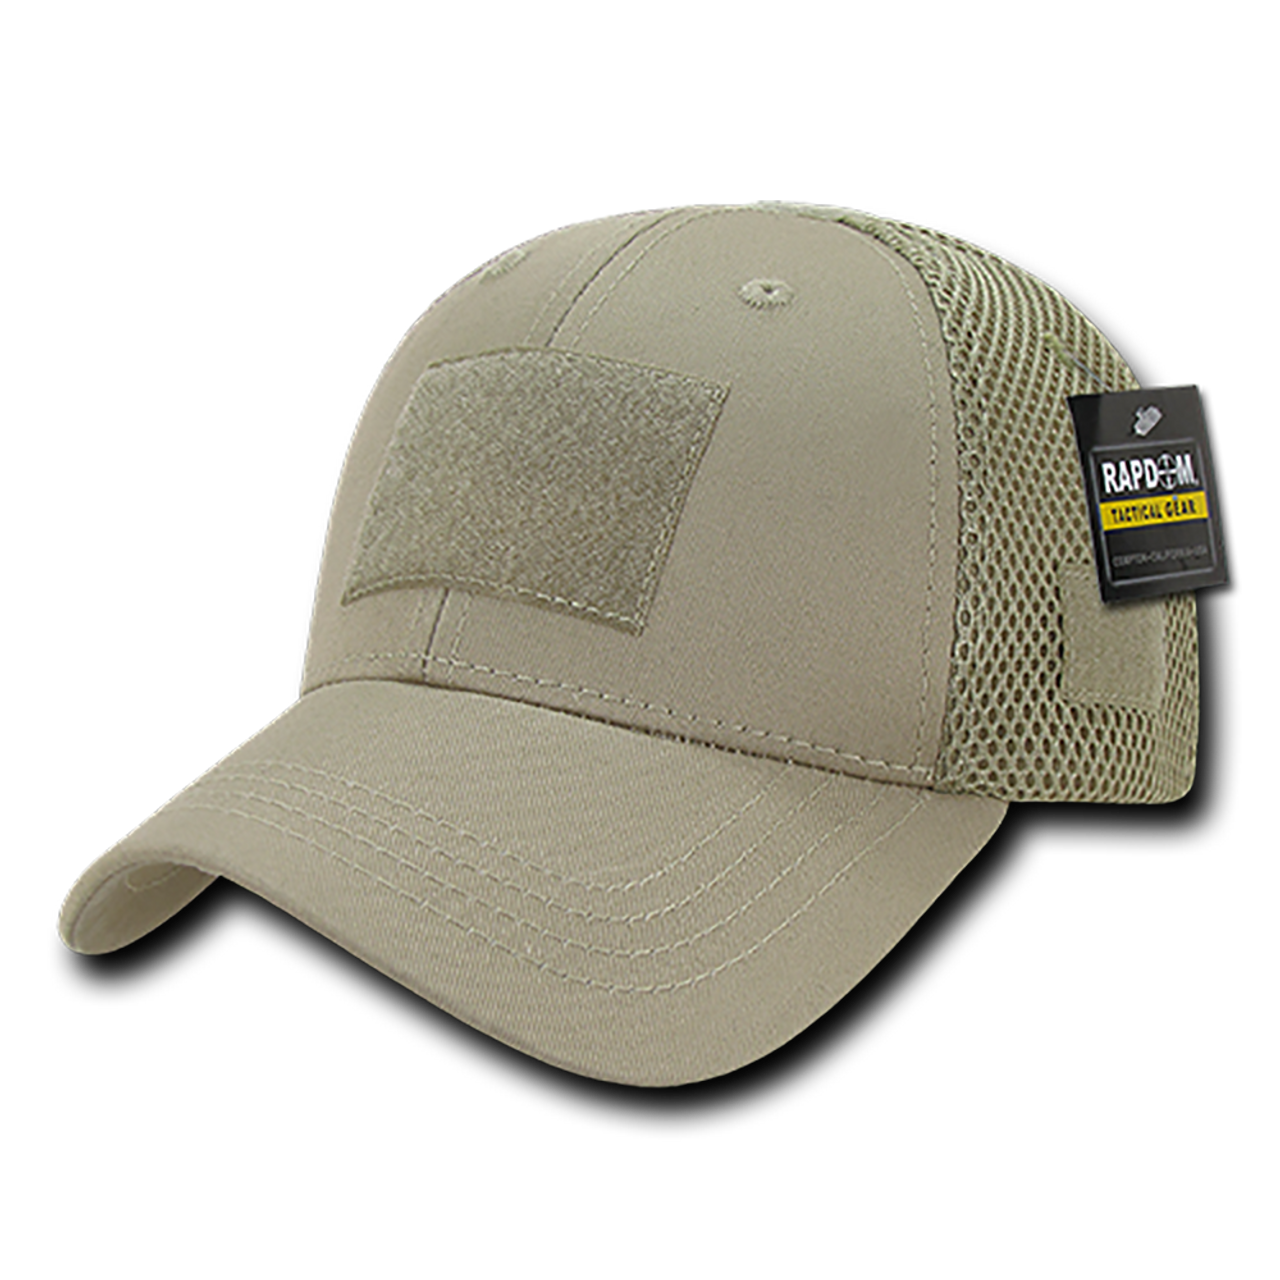 T80 - Tactical Cap - Low Crown Air Mesh - Khaki - USMILITARYHATS.COM 96eb502c7589